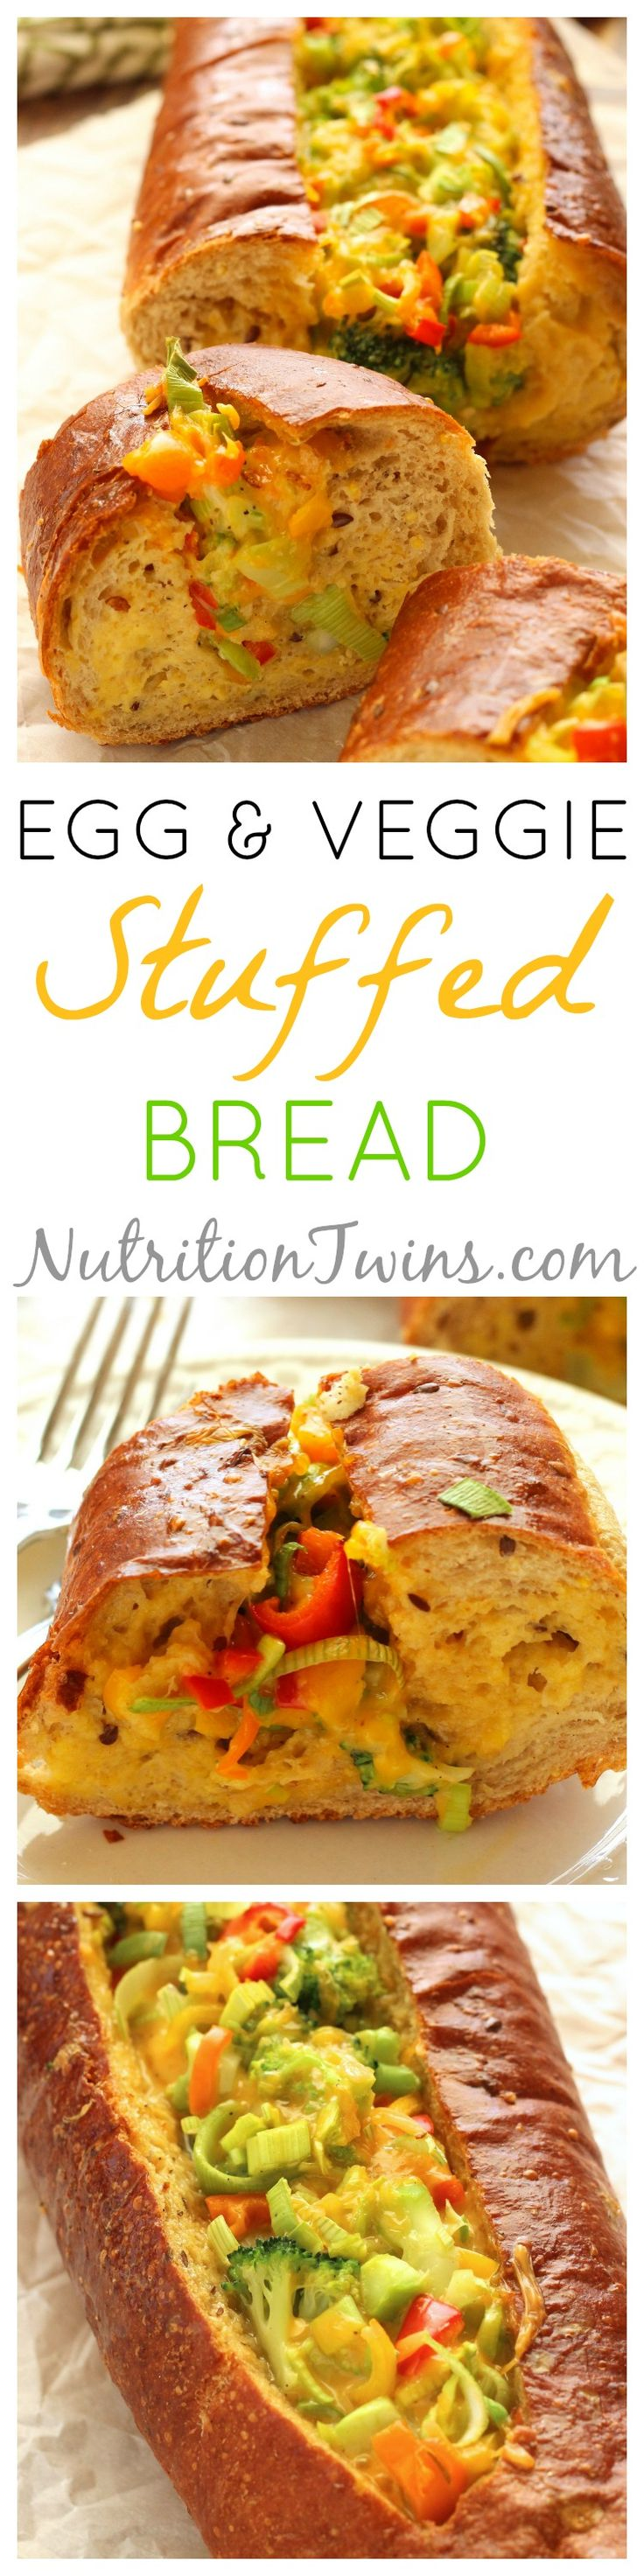 Egg & Veggie Stuffed Bread | Perfect Superbowl Appetizer | Only 154 Calories | Crunchy Outside, Savory & Luscious Inside | Made with @egglandsbest .client | For MORE RECIPES please SIGN UP for our FREE NEWSLETTER www.NutritionTwins.com